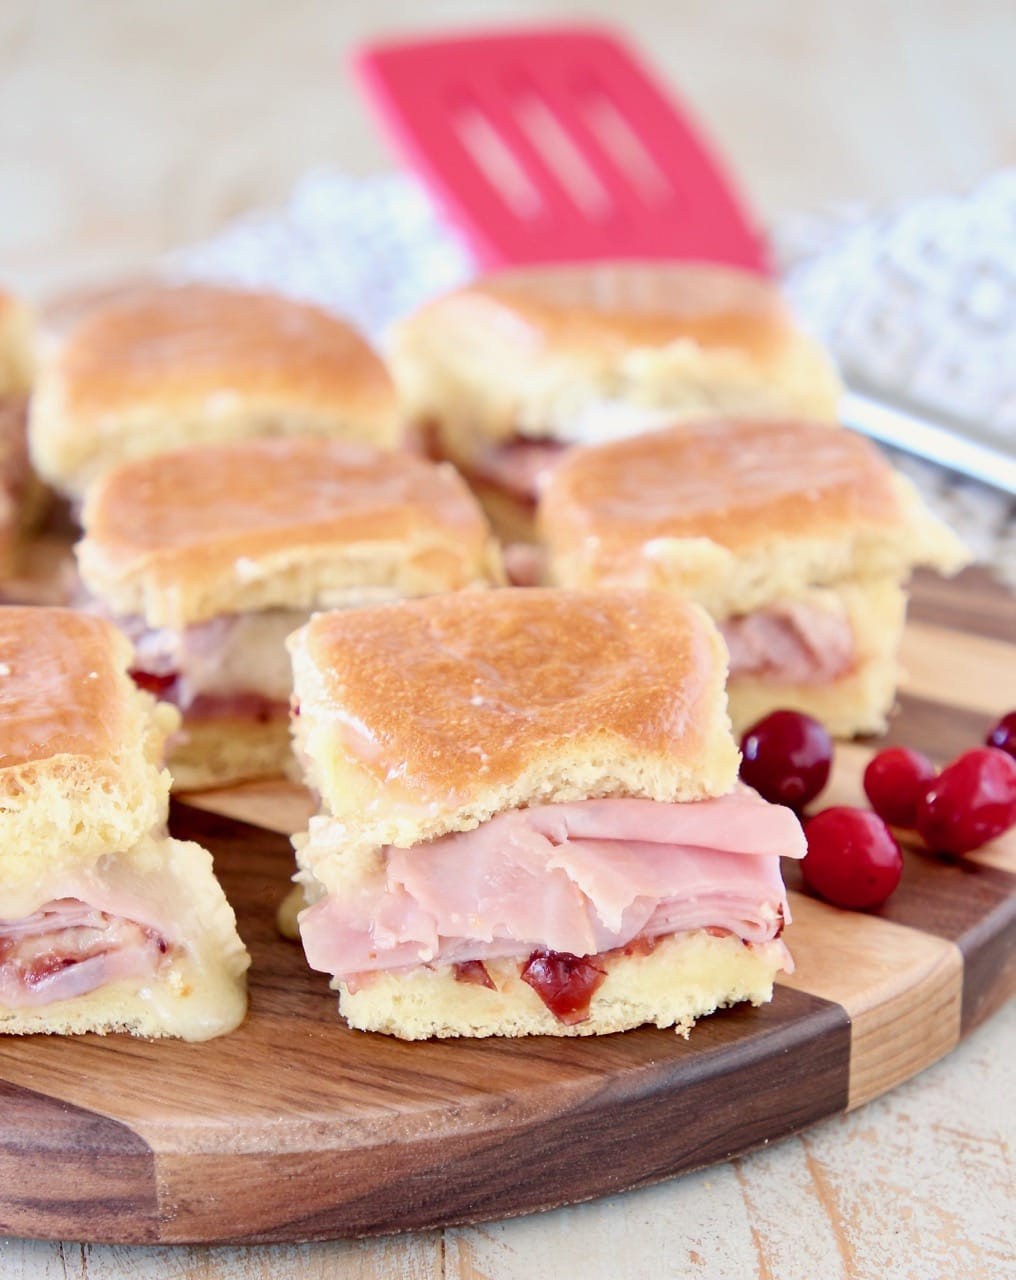 Ham sliders on hawaiian rolls with cranberry sauce, on wood cutting board with fresh cranberries on the side and red spatula in the background